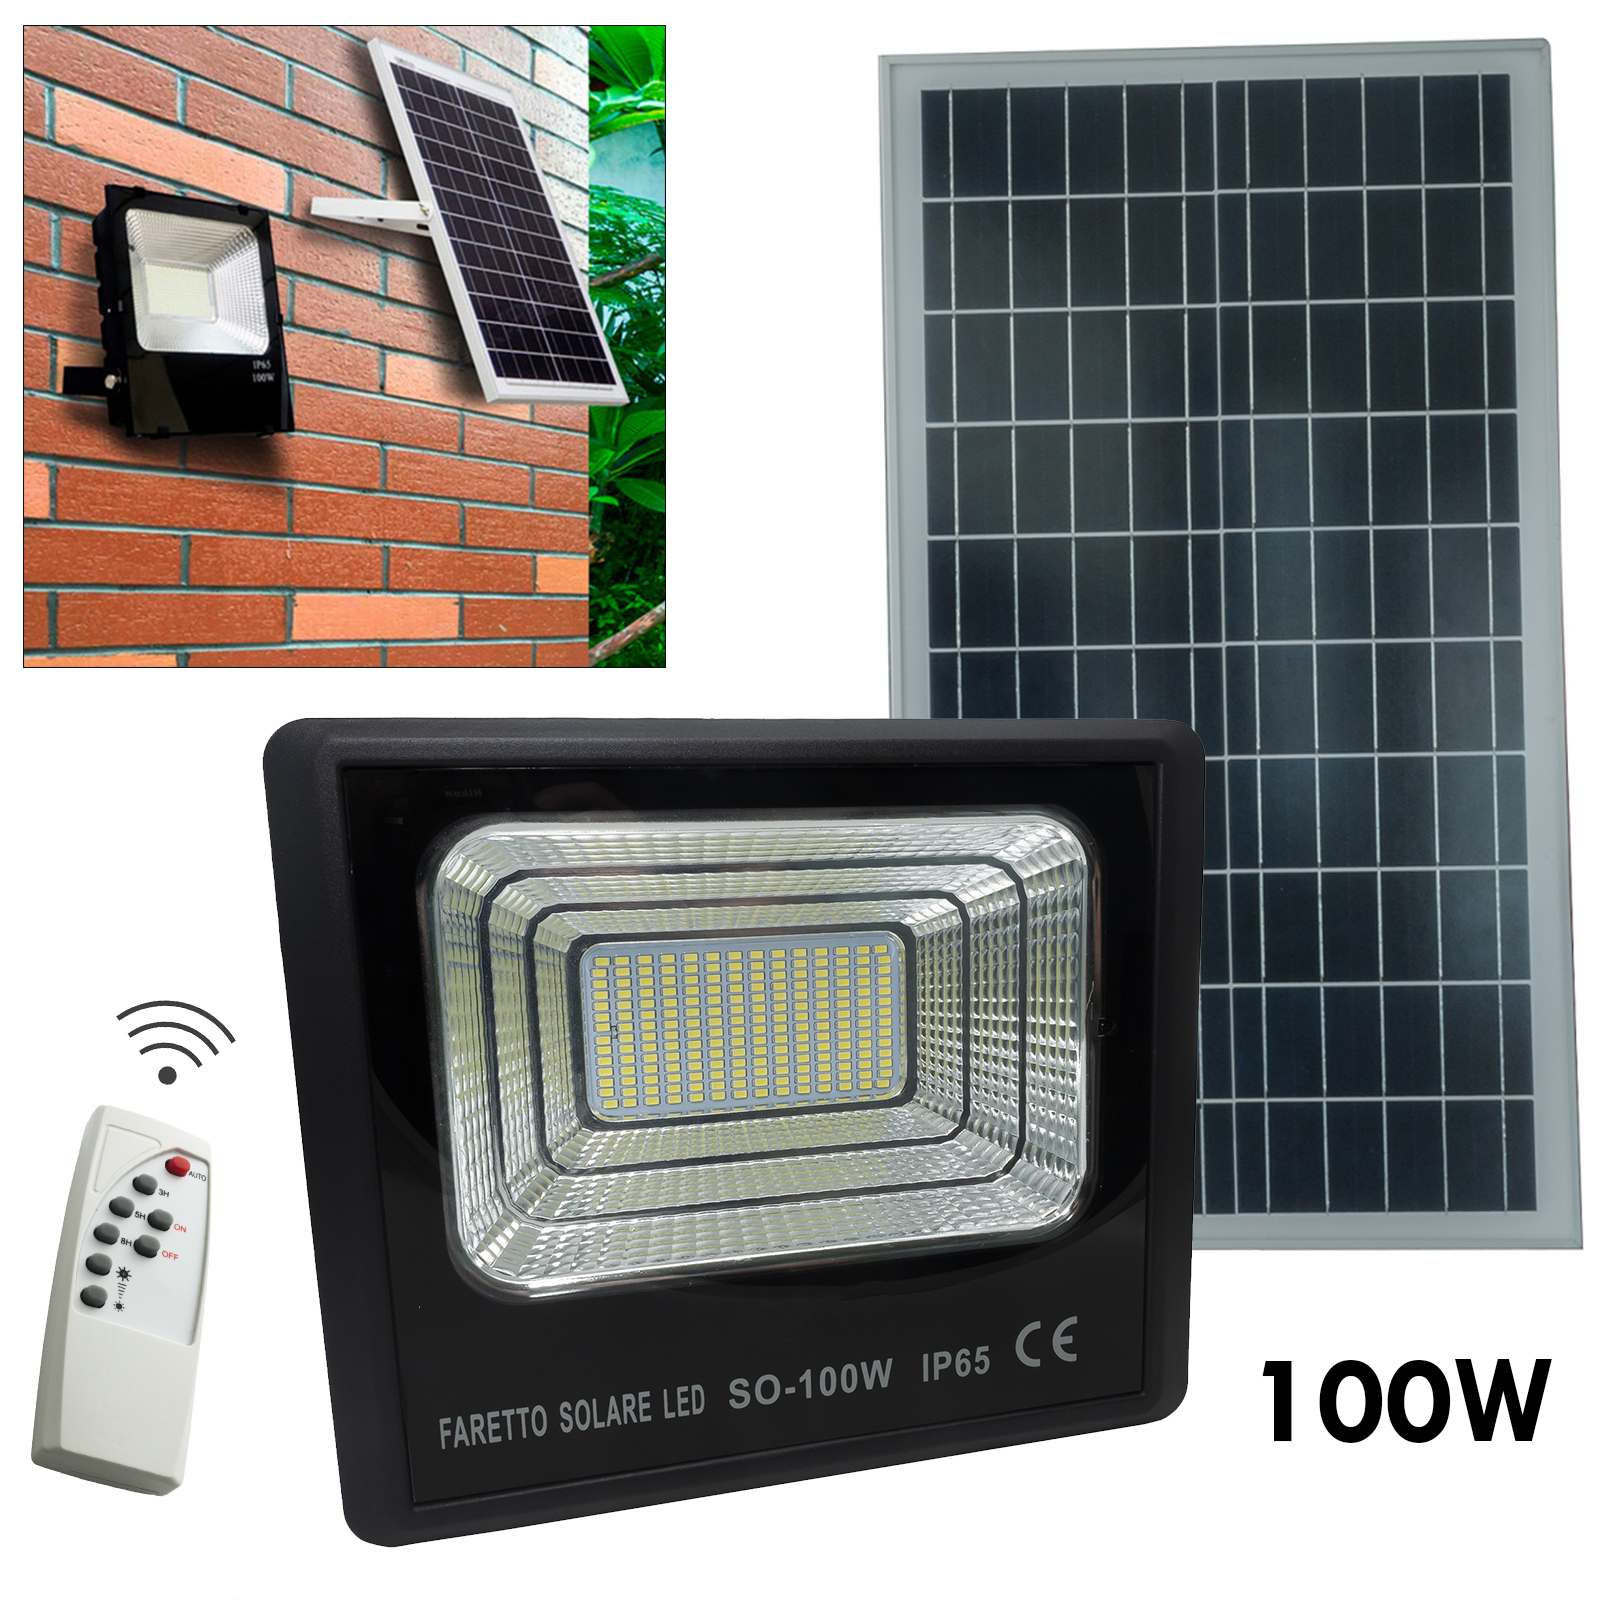 Lighthouse LED projector twilight 100W charging panel, solar garden light IP65